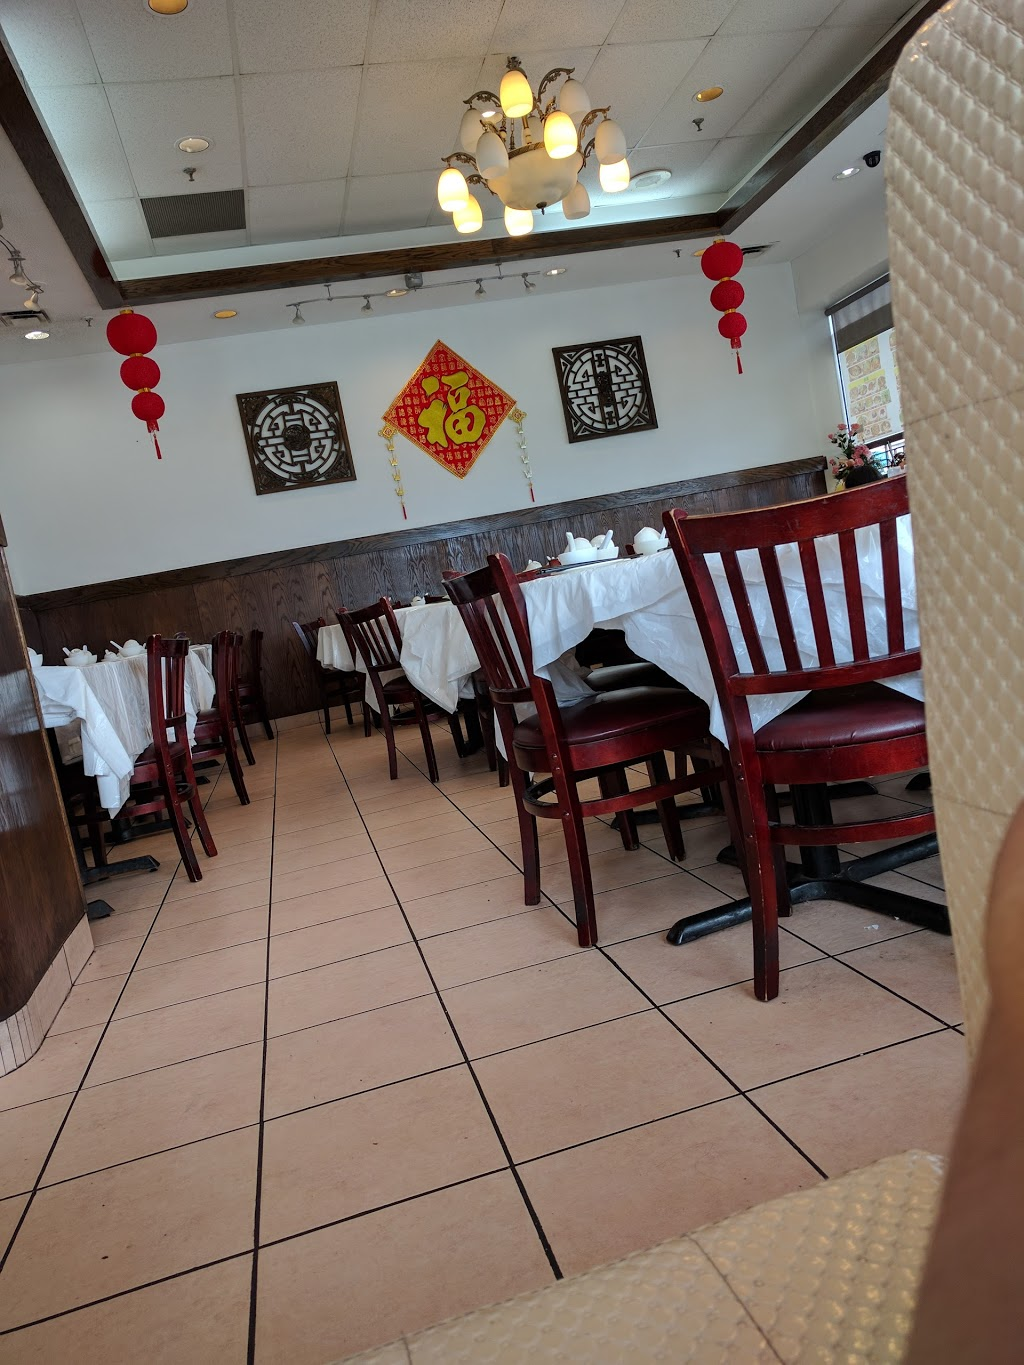 Backyard Garden Restaurant | restaurant | 3636 Steeles Ave E, Markham, ON L3R 1K9, Canada | 9054158988 OR +1 905-415-8988